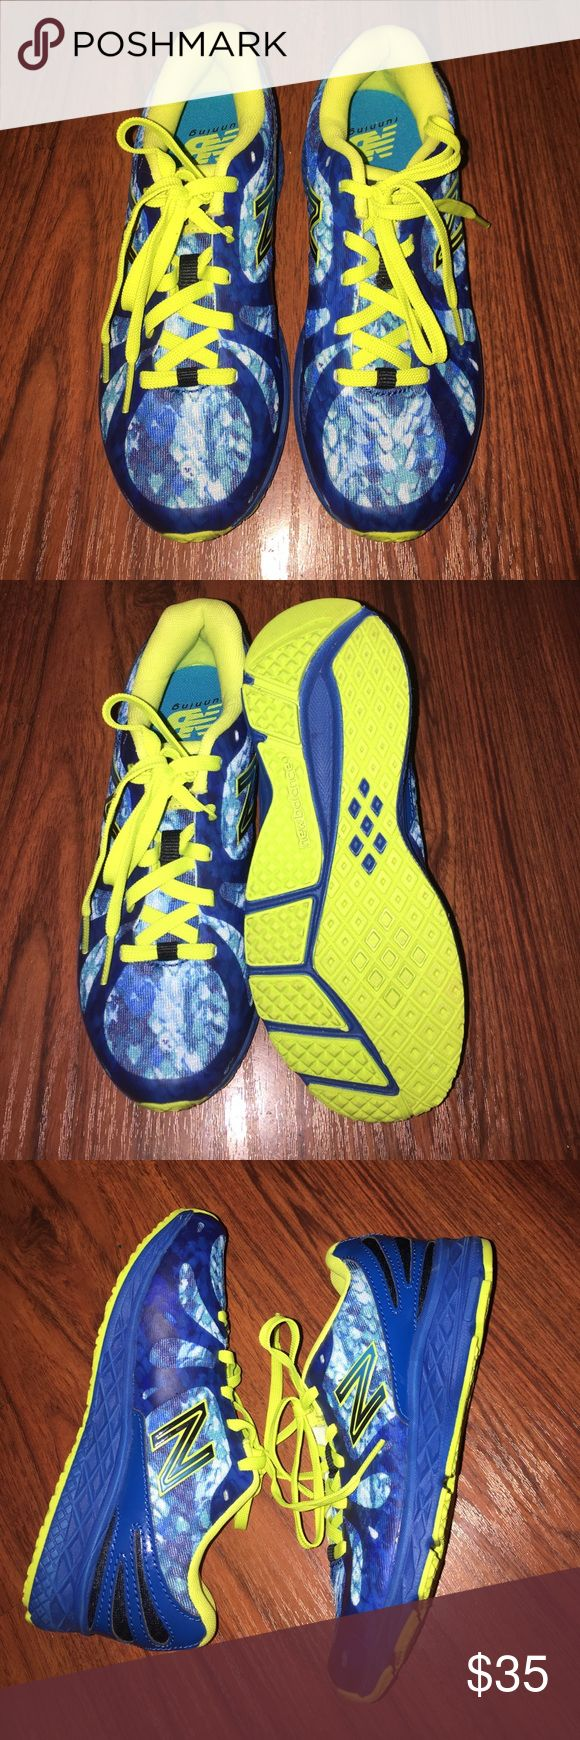 New Balance 890 Brand new sneakers in a preschool size 2. New balance 890 with a snake print in blue and yellow. No box. New Balance Shoes Sneakers